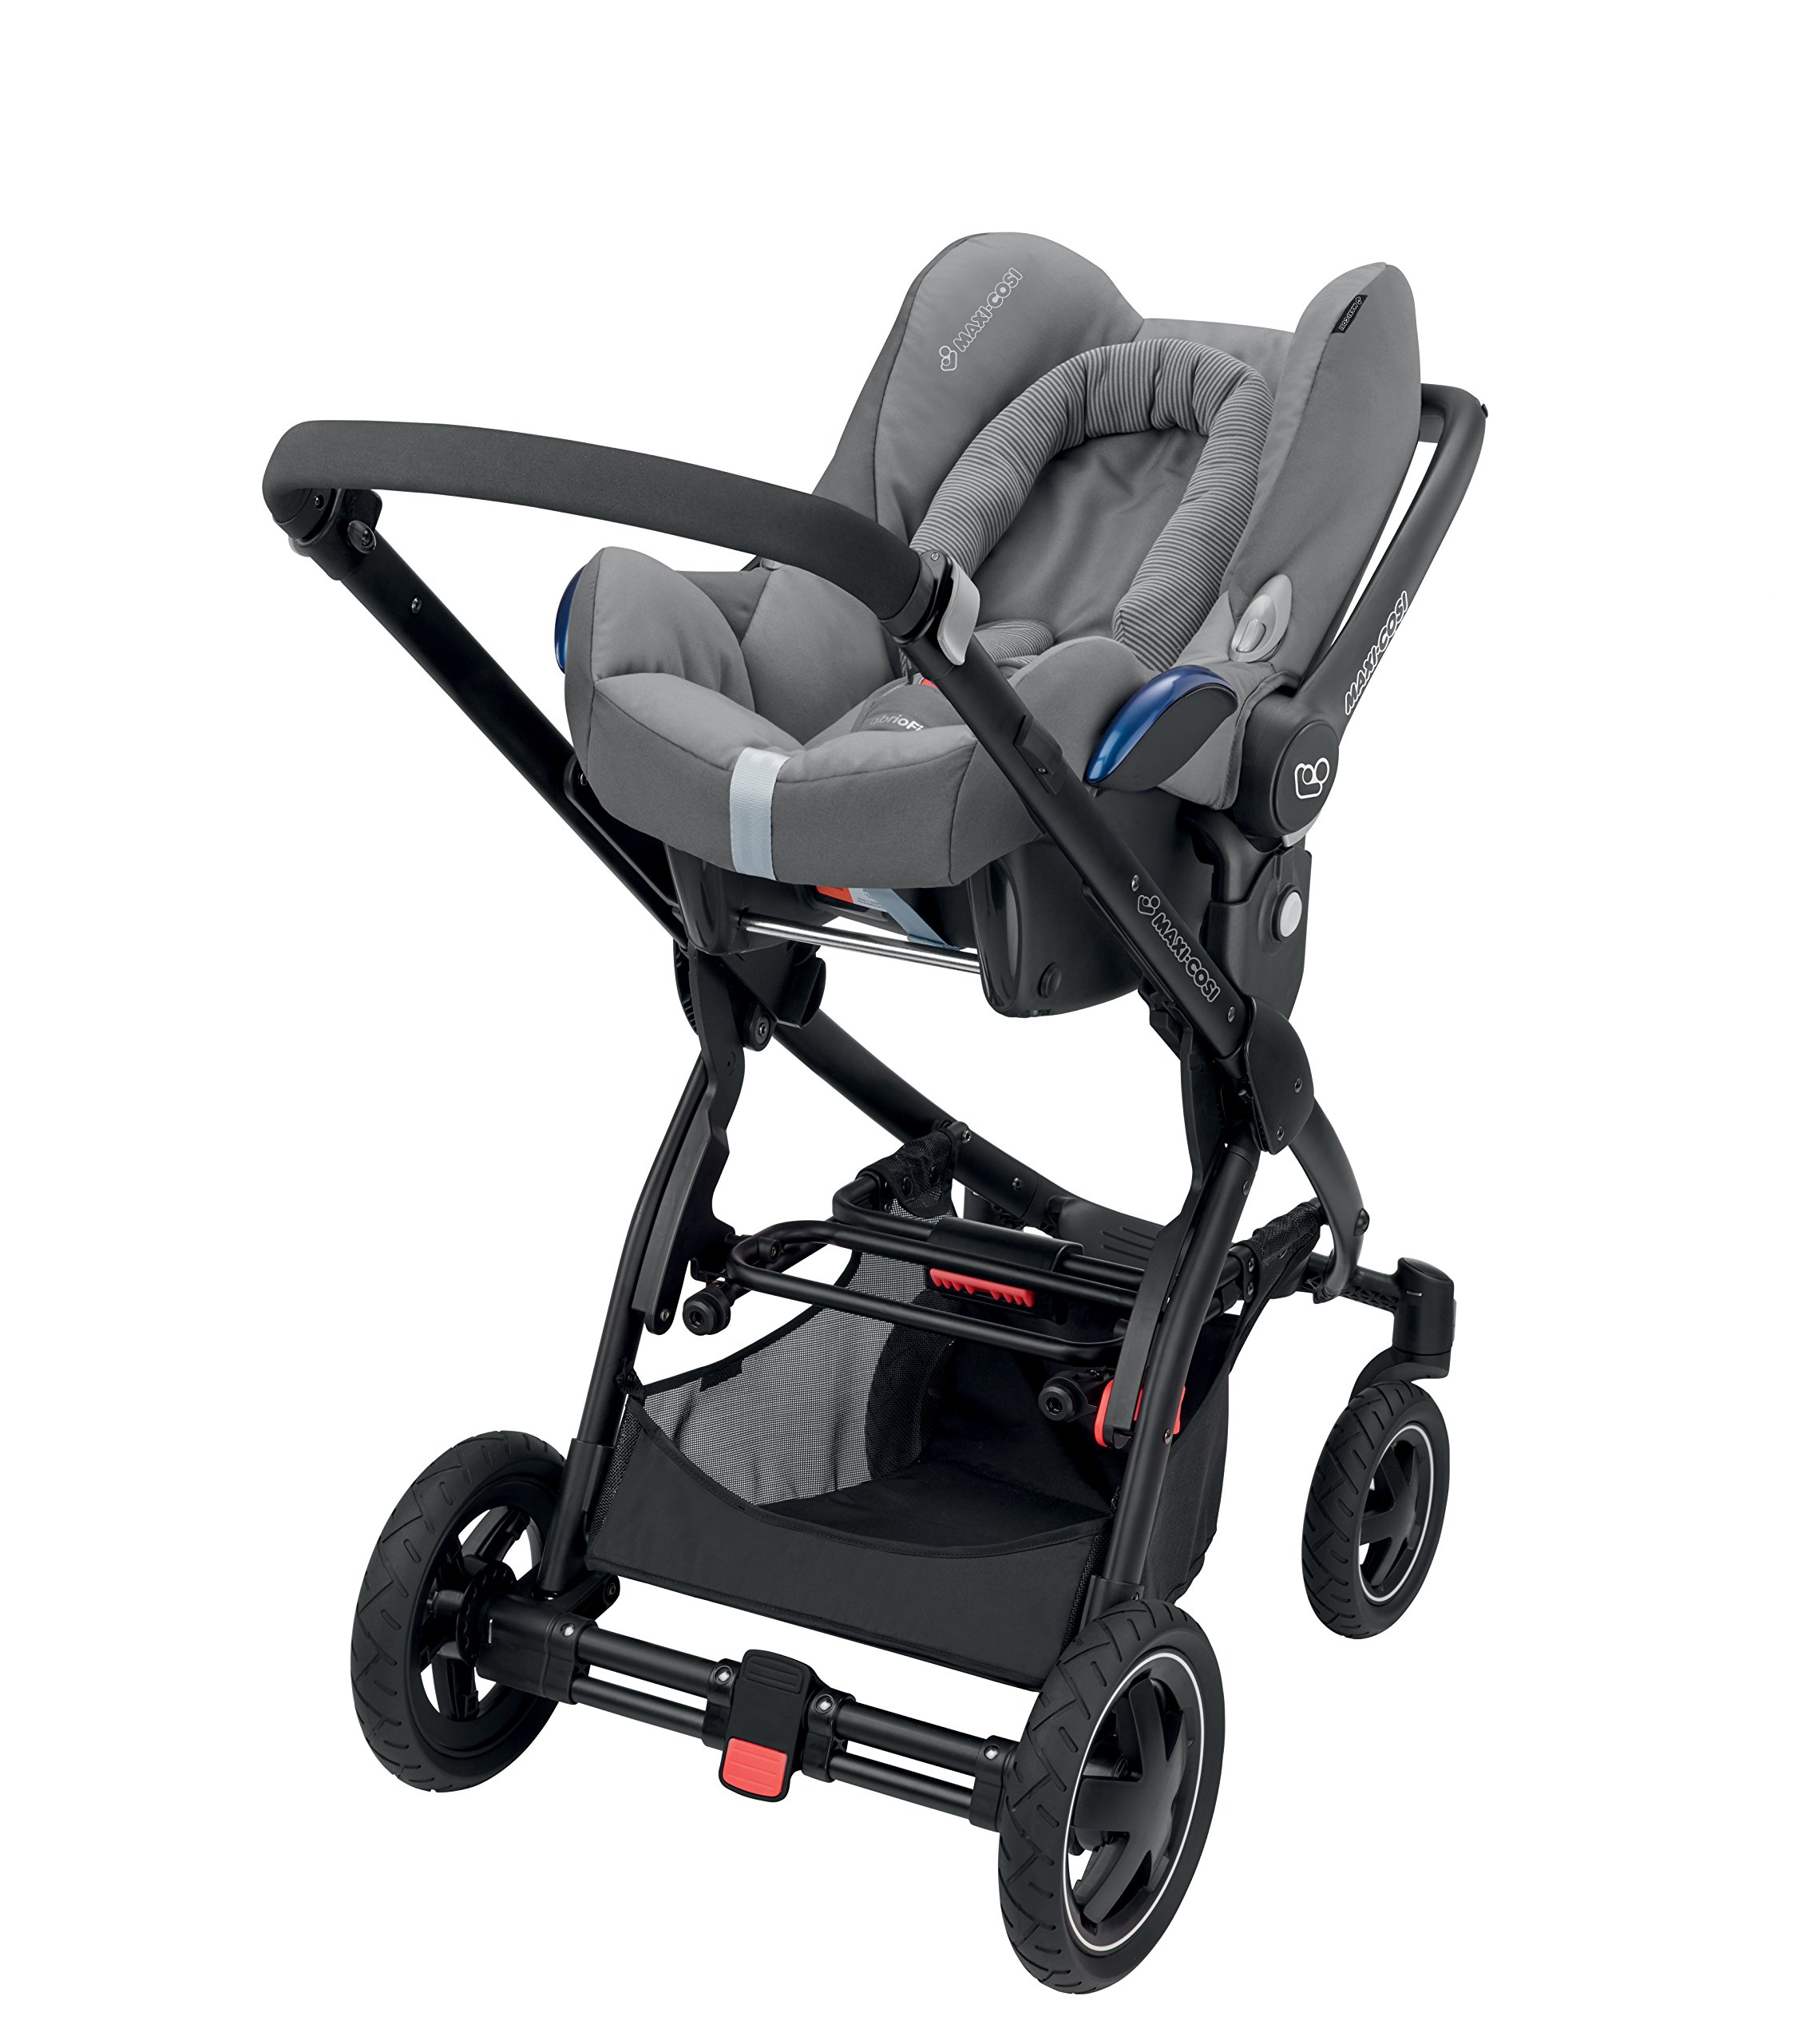 Maxi-Cosi CabrioFix Baby Car Seat Group 0+, ISOFIX, 0-12 Months, 0-13 kg, Concrete Grey Maxi-Cosi Suitable from birth to 13 kg (approximately 12 months) Compatible with Maxi-Cosi and Quinny pushchairs to form a travel system Easy installation in combination with Maxi-Cosi FamilyFix Base, EasyFix Base or a three-point seat belt 5